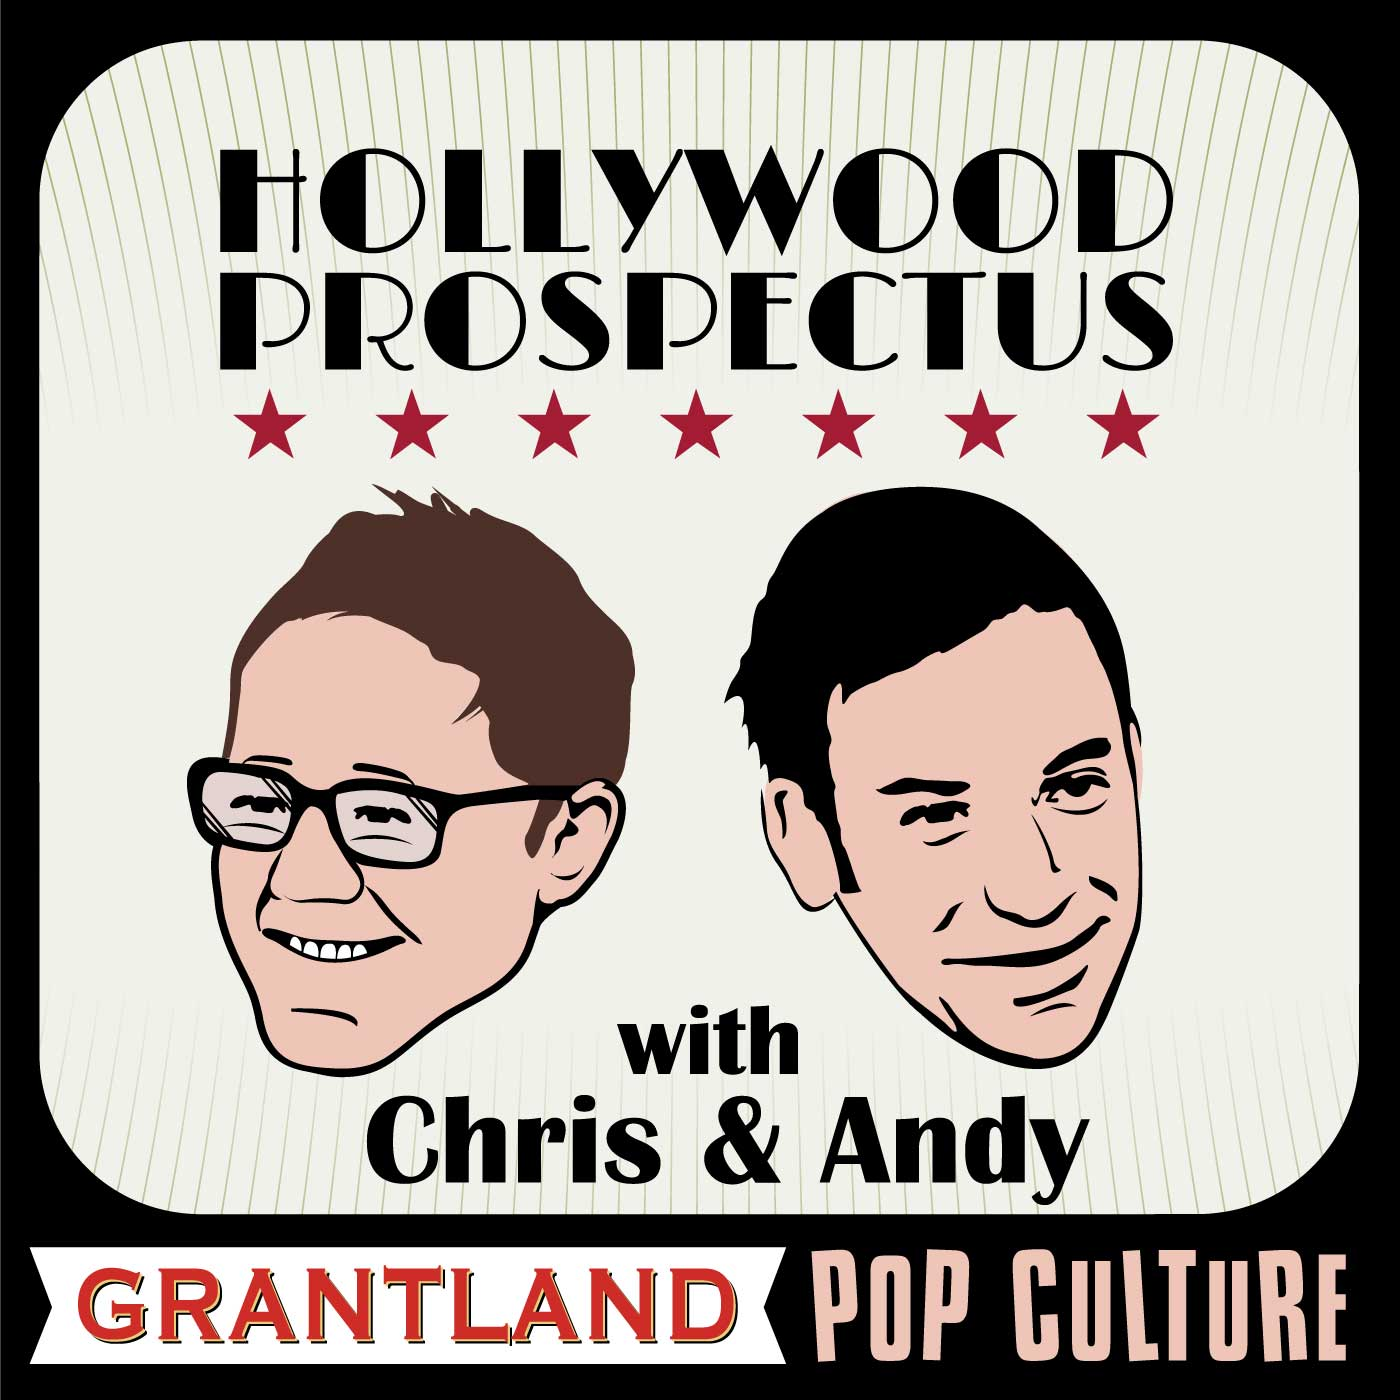 Hollywood Prospectus